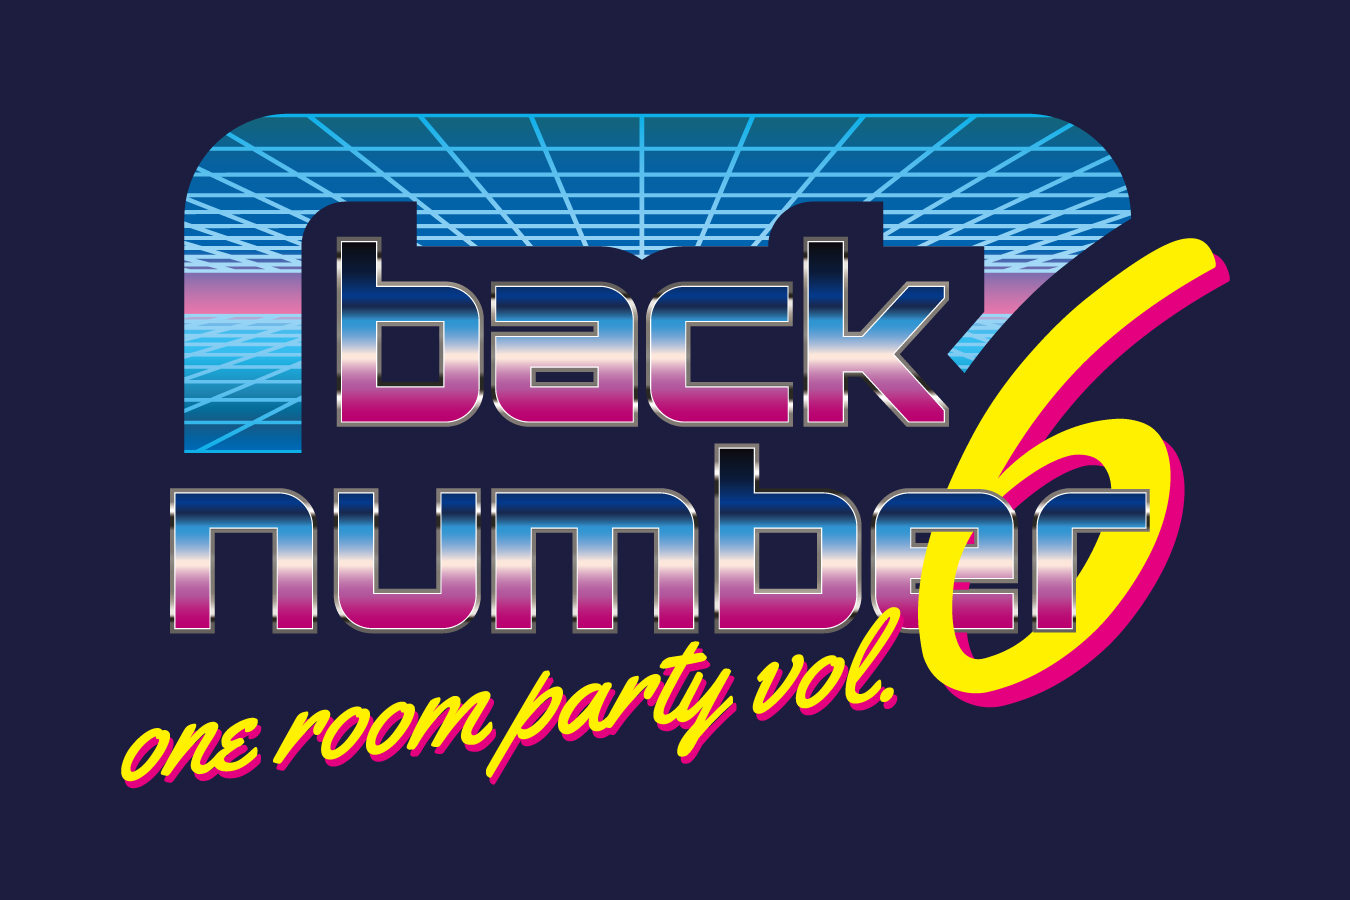 back number fanclub tour 2021『one room party vol.6』チケット詳細発表・グッズ事前販売決定!